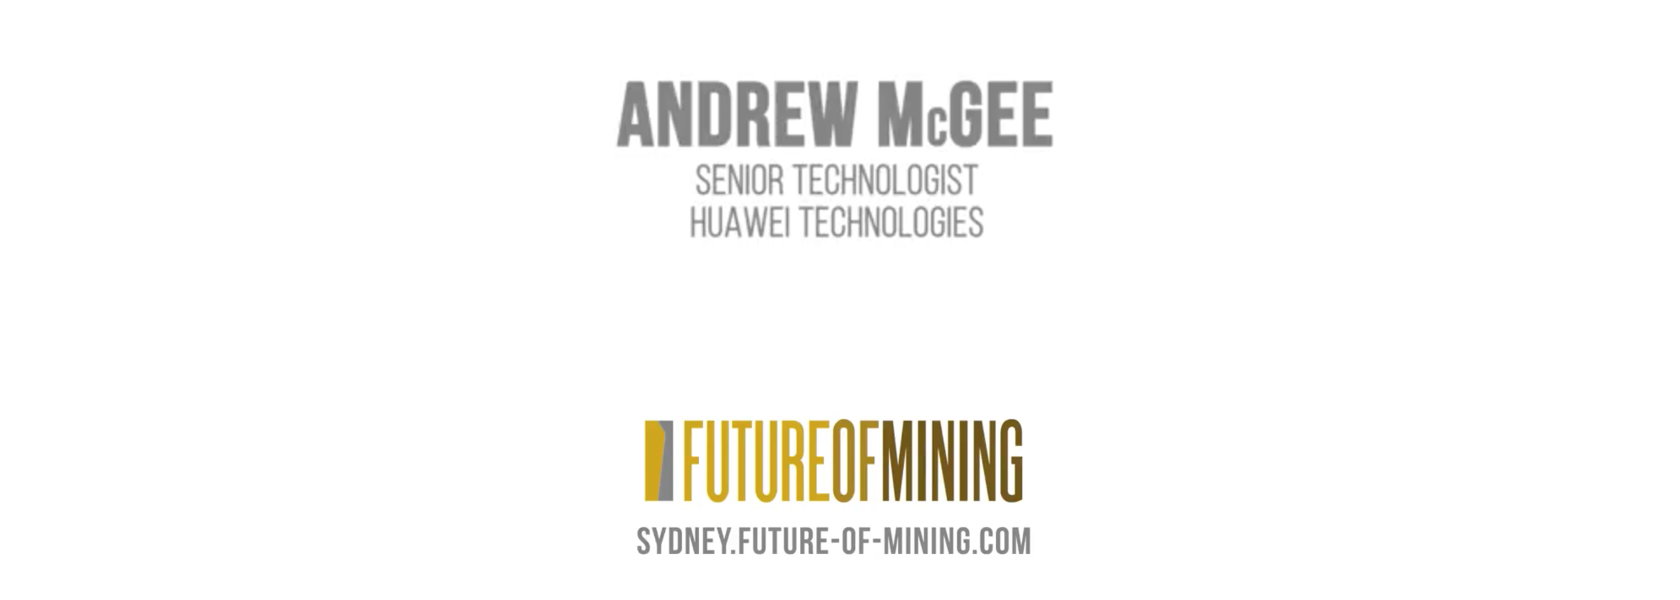 Cloud technology for remote operations - MiningMonthly com